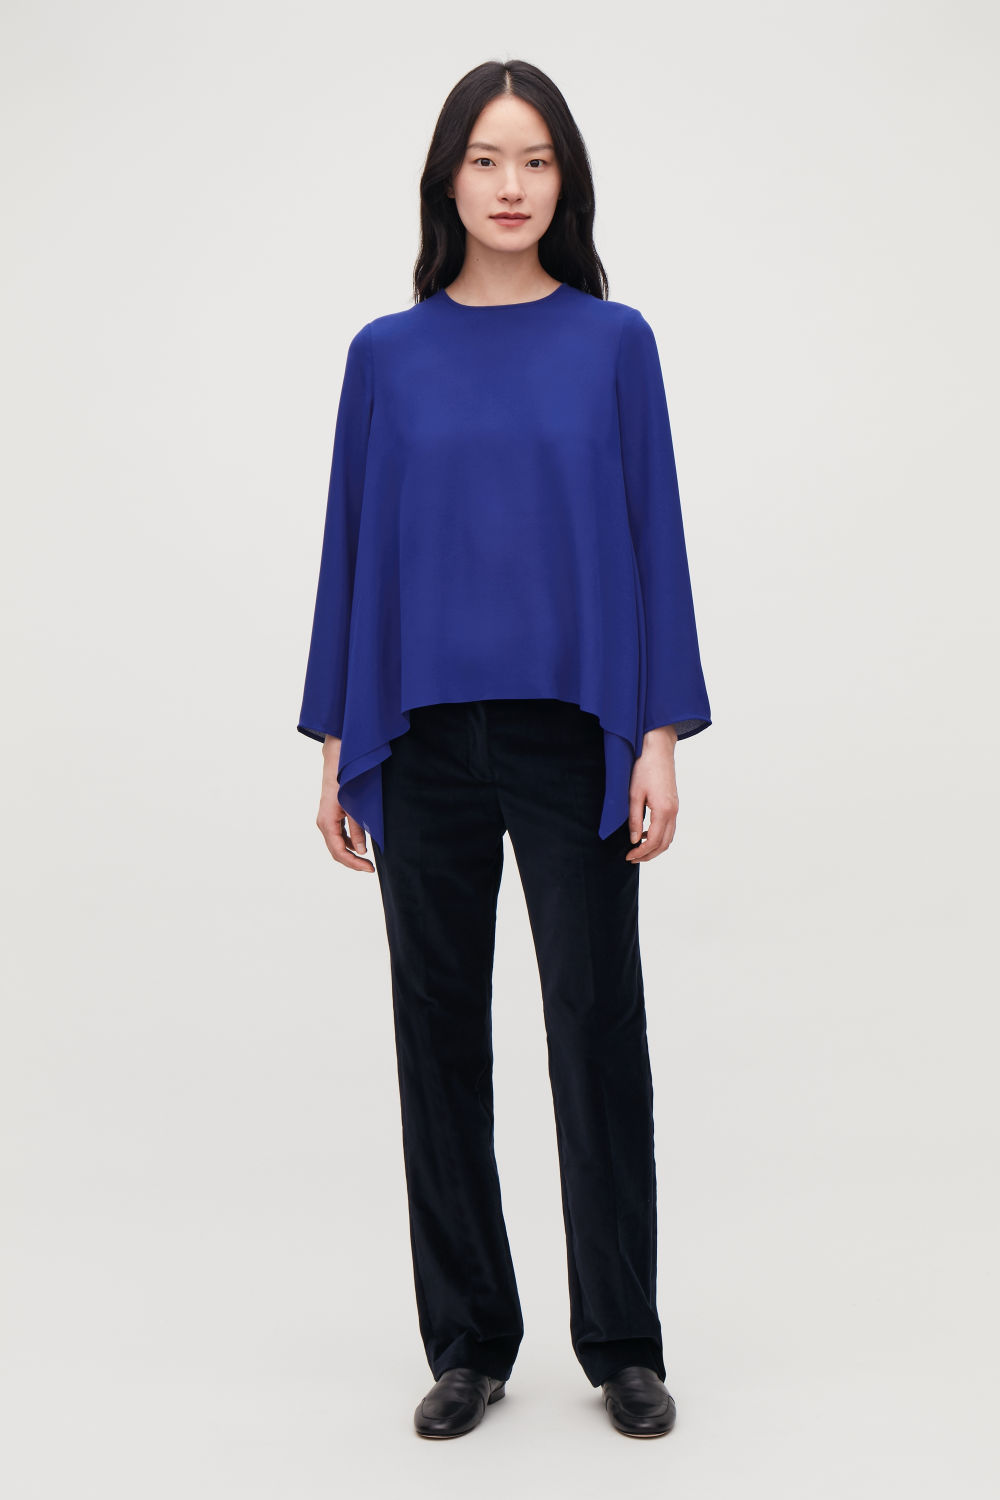 A-LINE TOP WITH PLEATED BACK